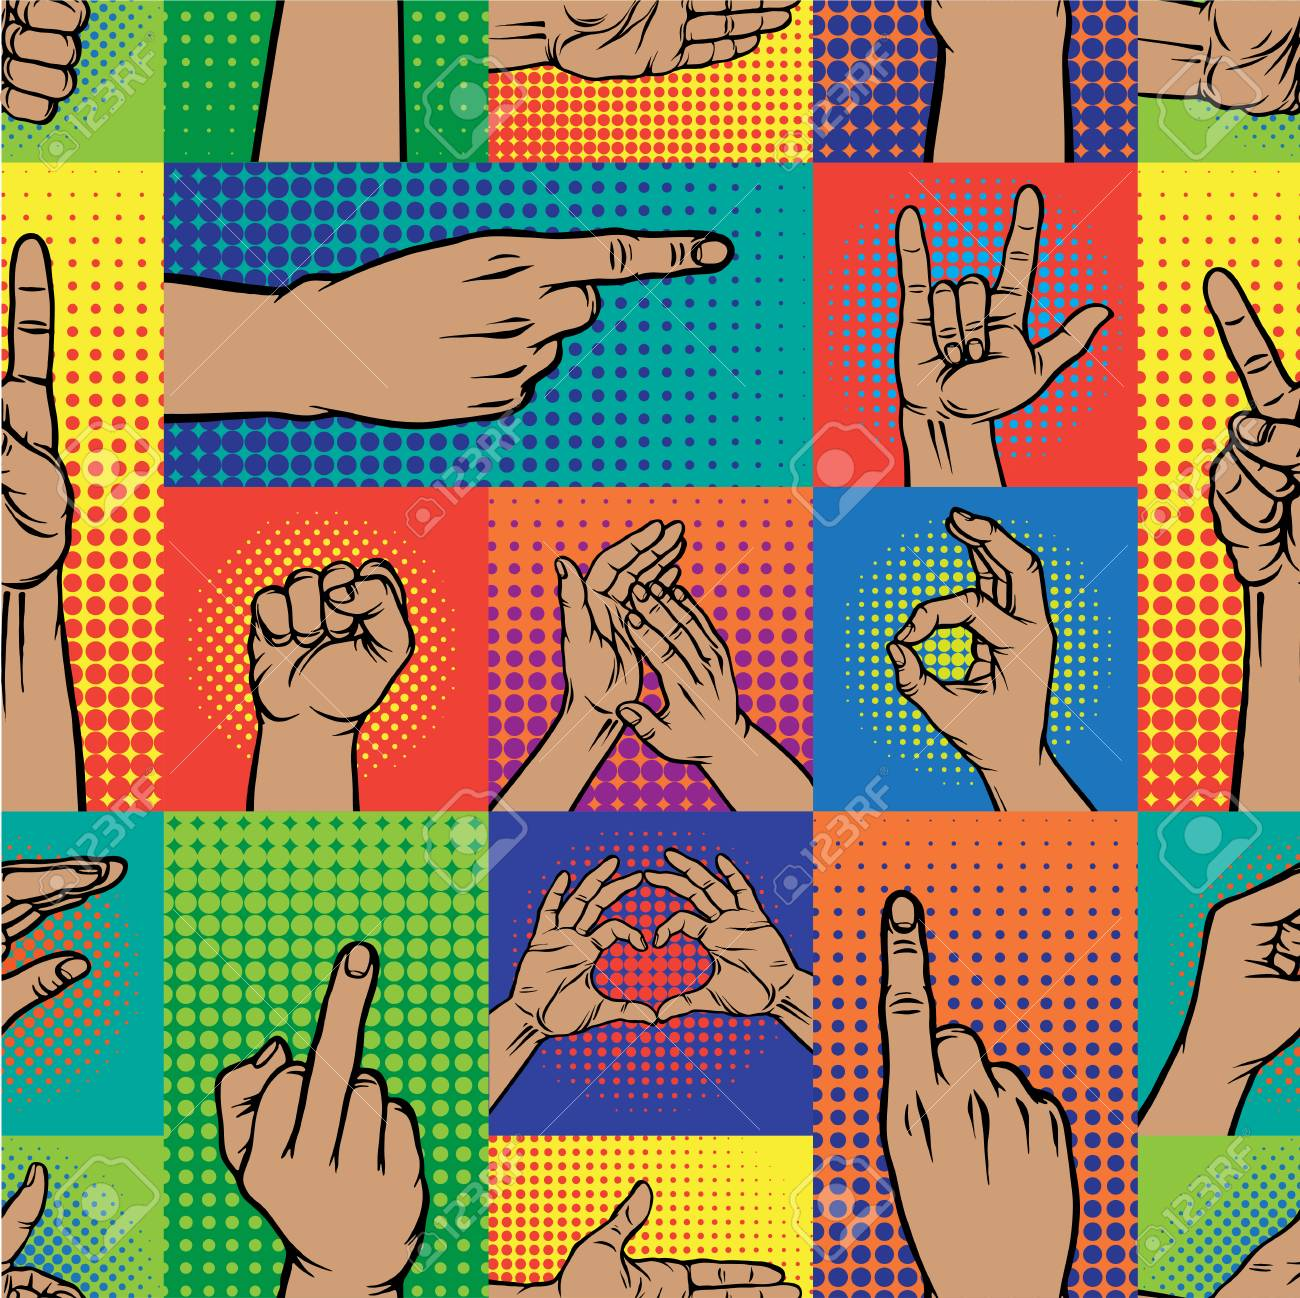 91655587-pop-art-hands-fingers-gesture-of-human-symbols-hands- Best Of Pop Art Hands @koolgadgetz.com.info